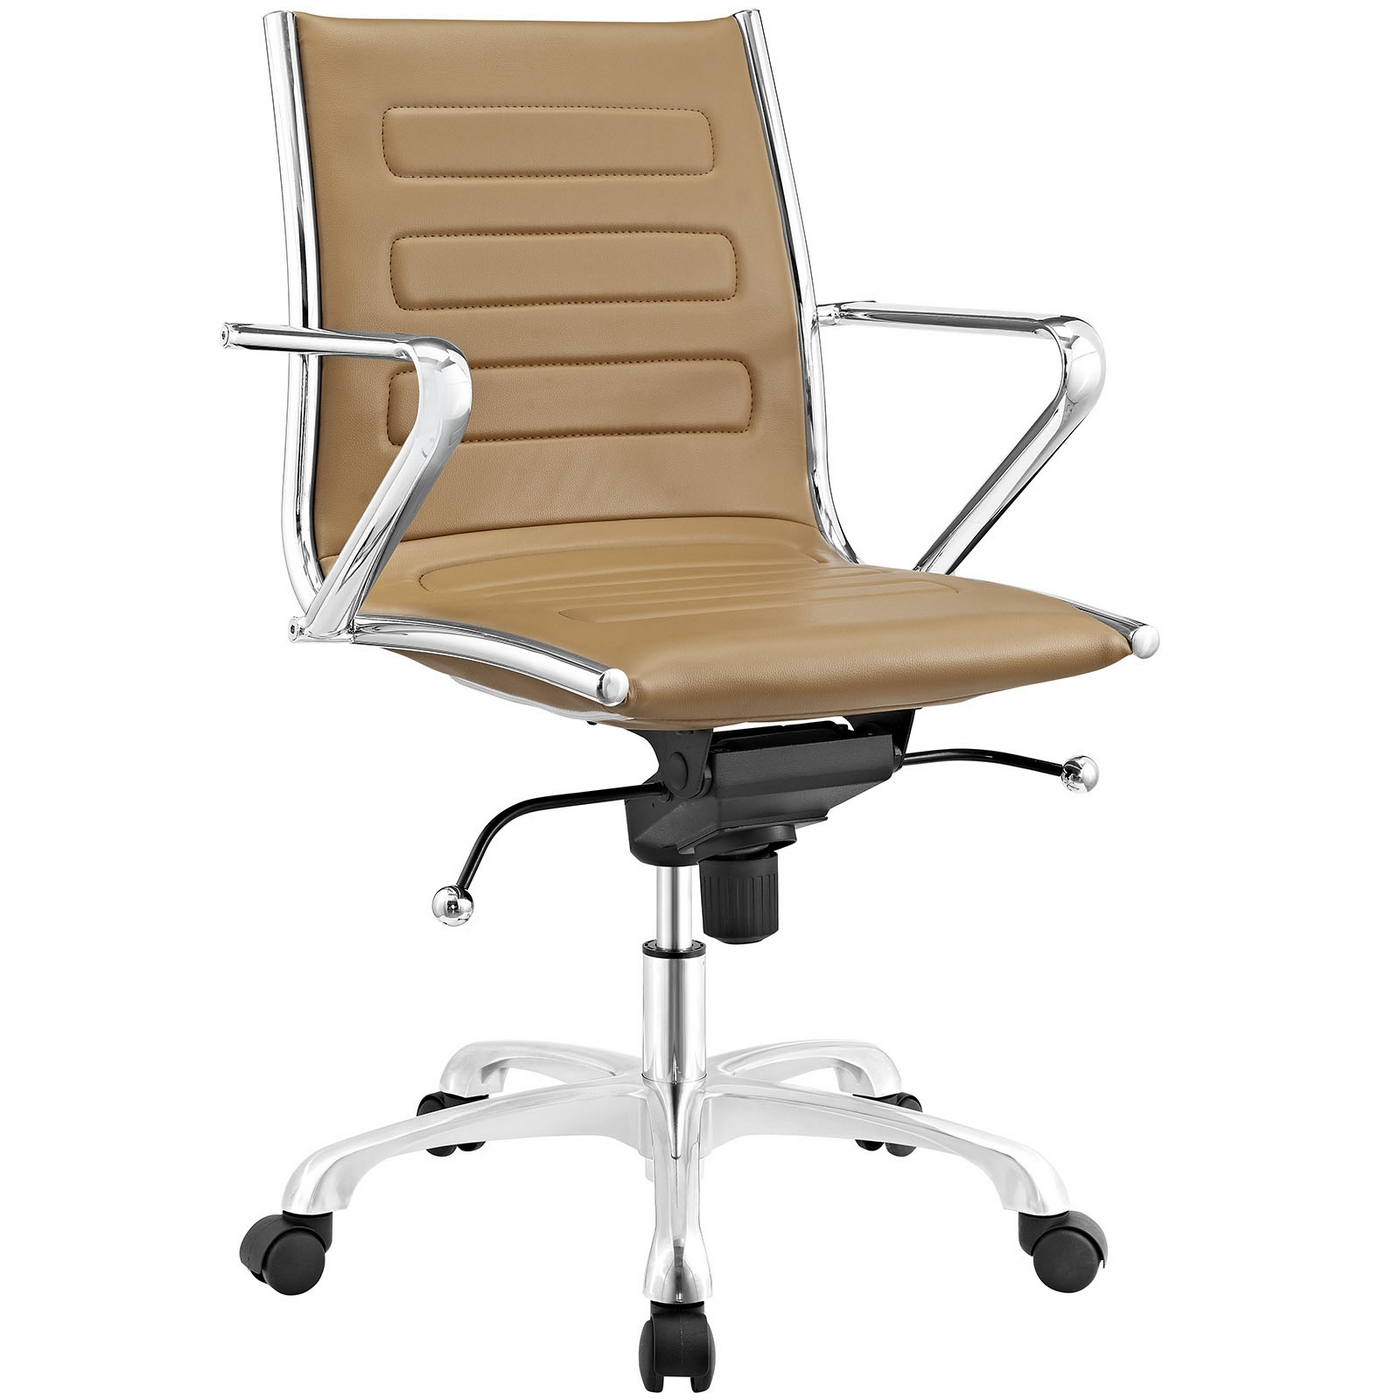 vale furnishers executive office chair in tan leather winston tan